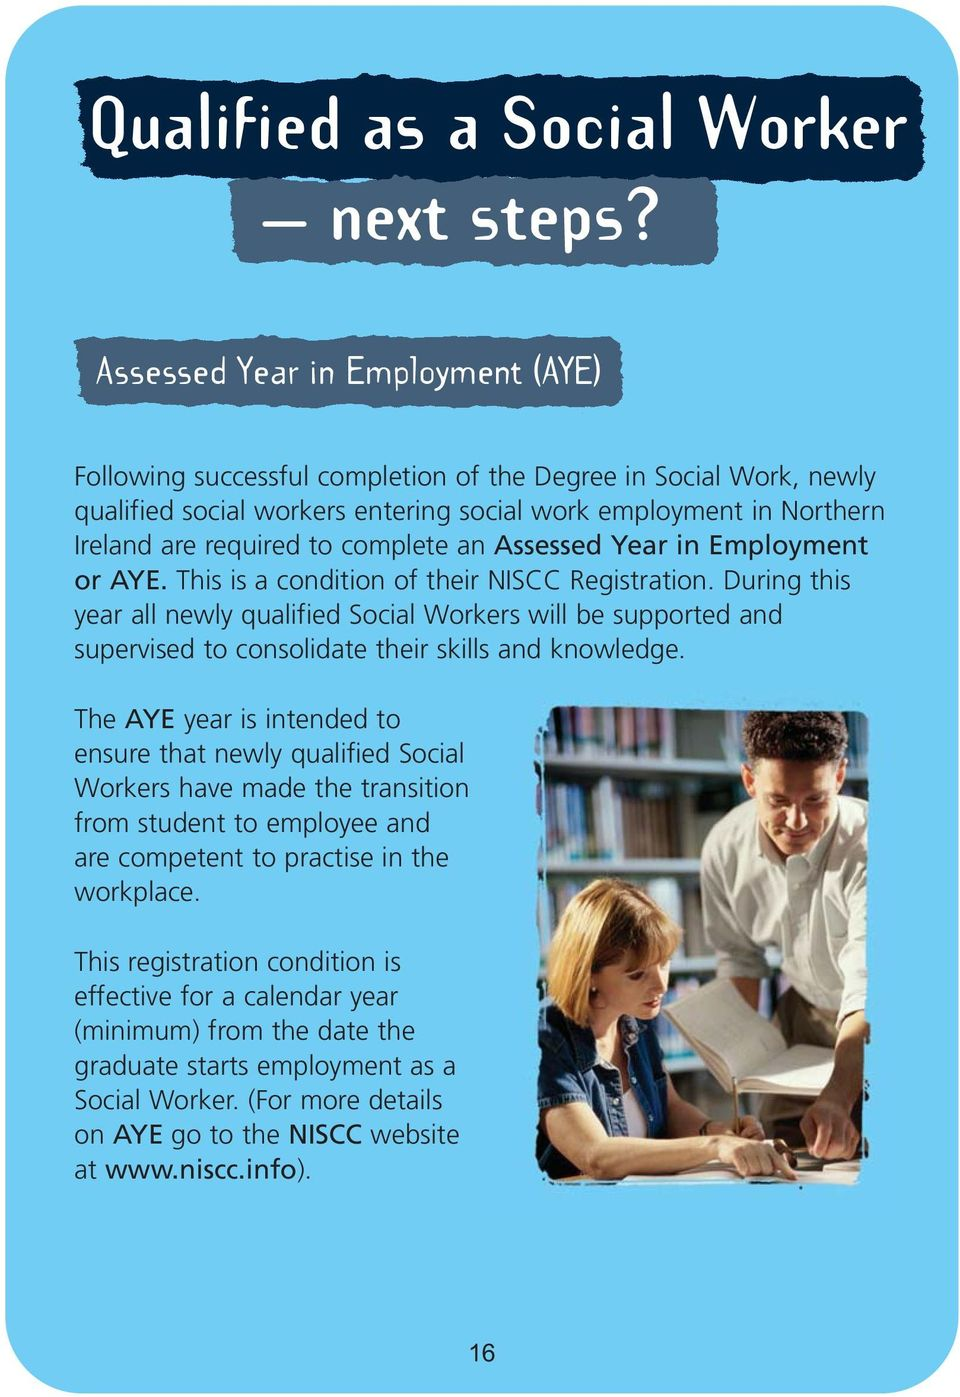 complete an Assessed Year in Employment or AYE. This is a condition of their NISCC Registration.